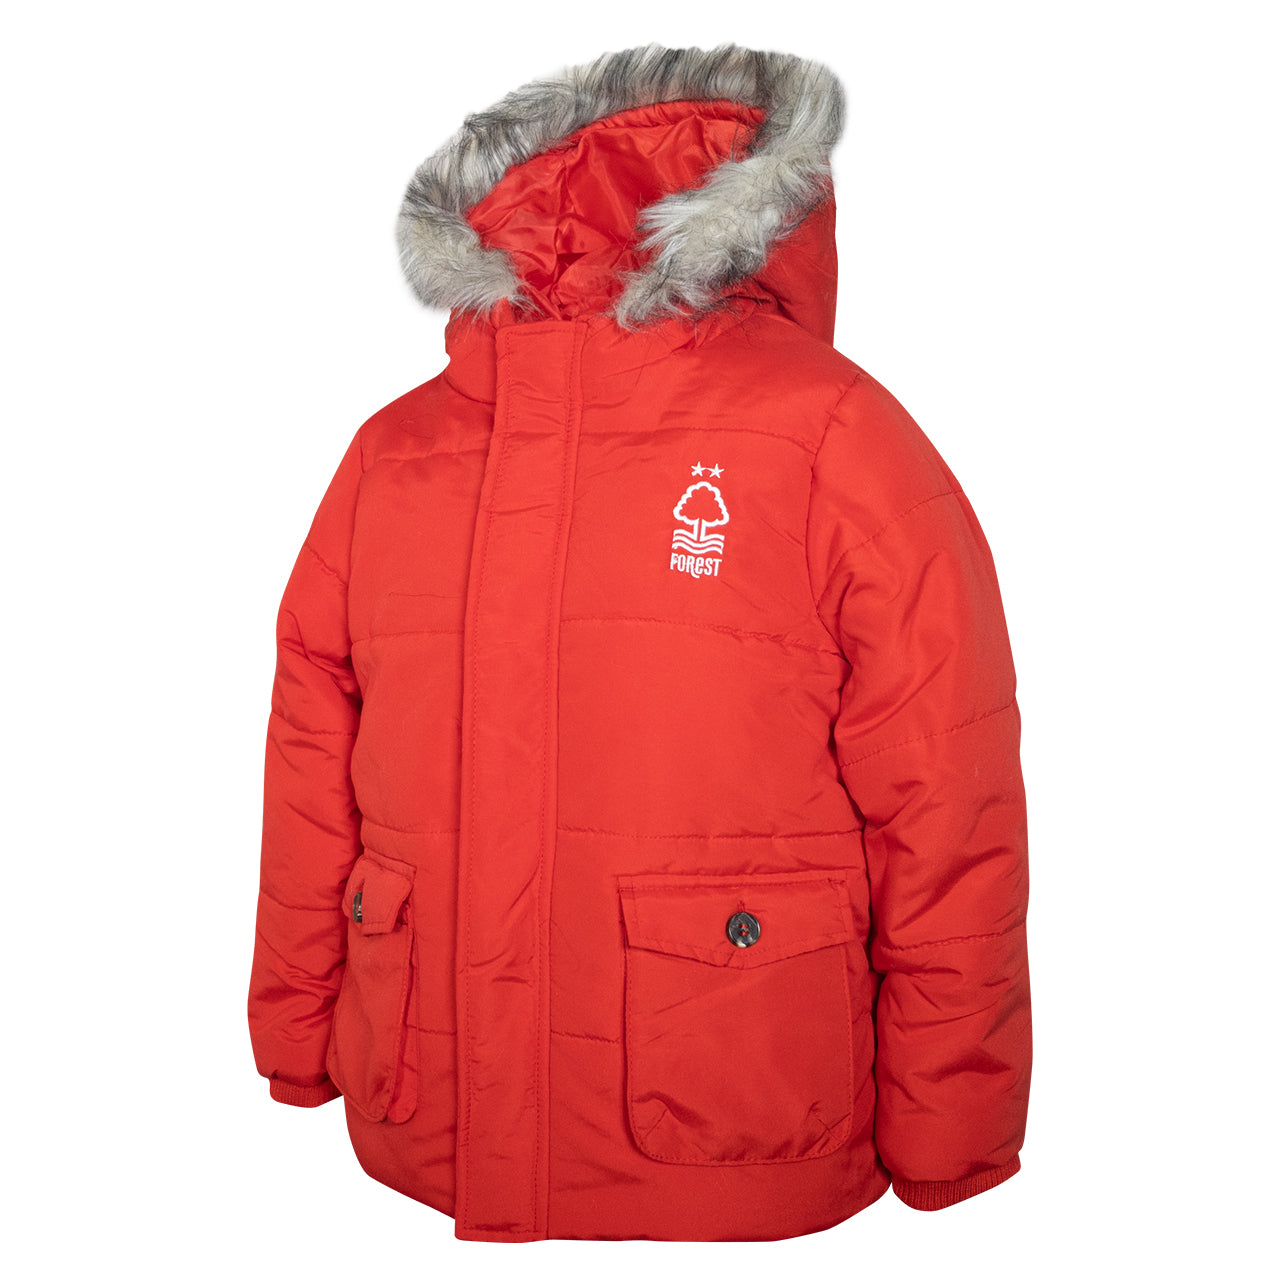 NFFC Red Essential Toddler Astro Jacket